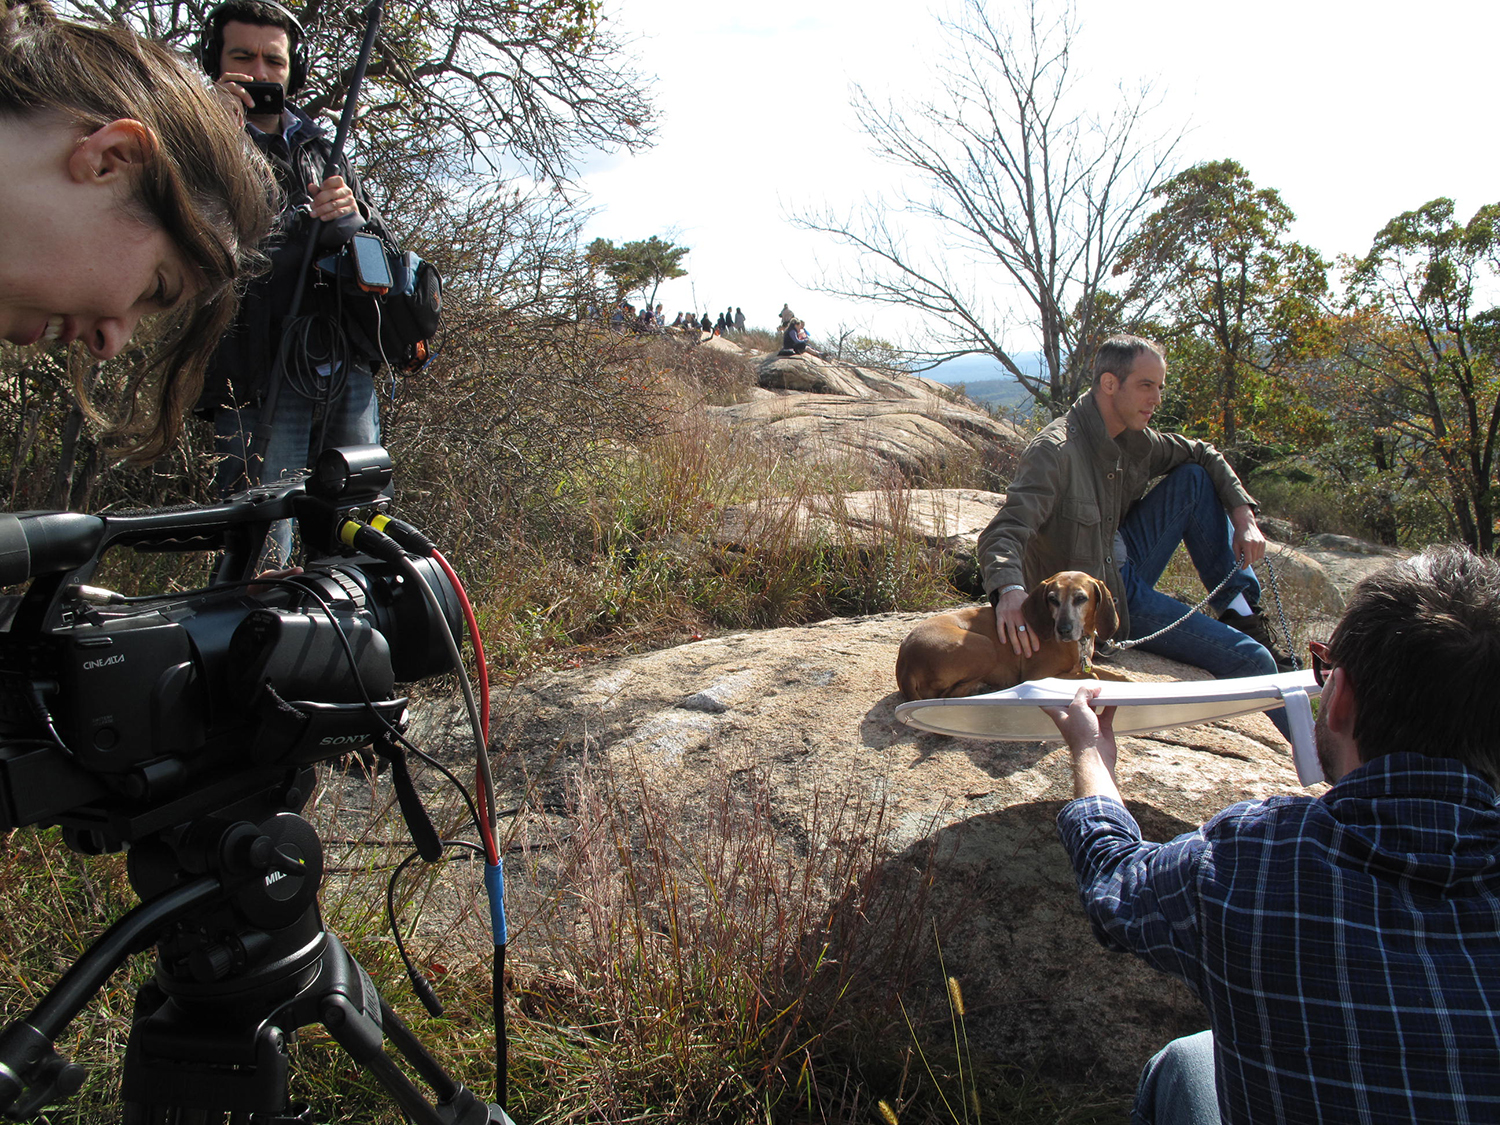 Shooting footage at Bear Mountain, NY with Dan Katz and Ruby.